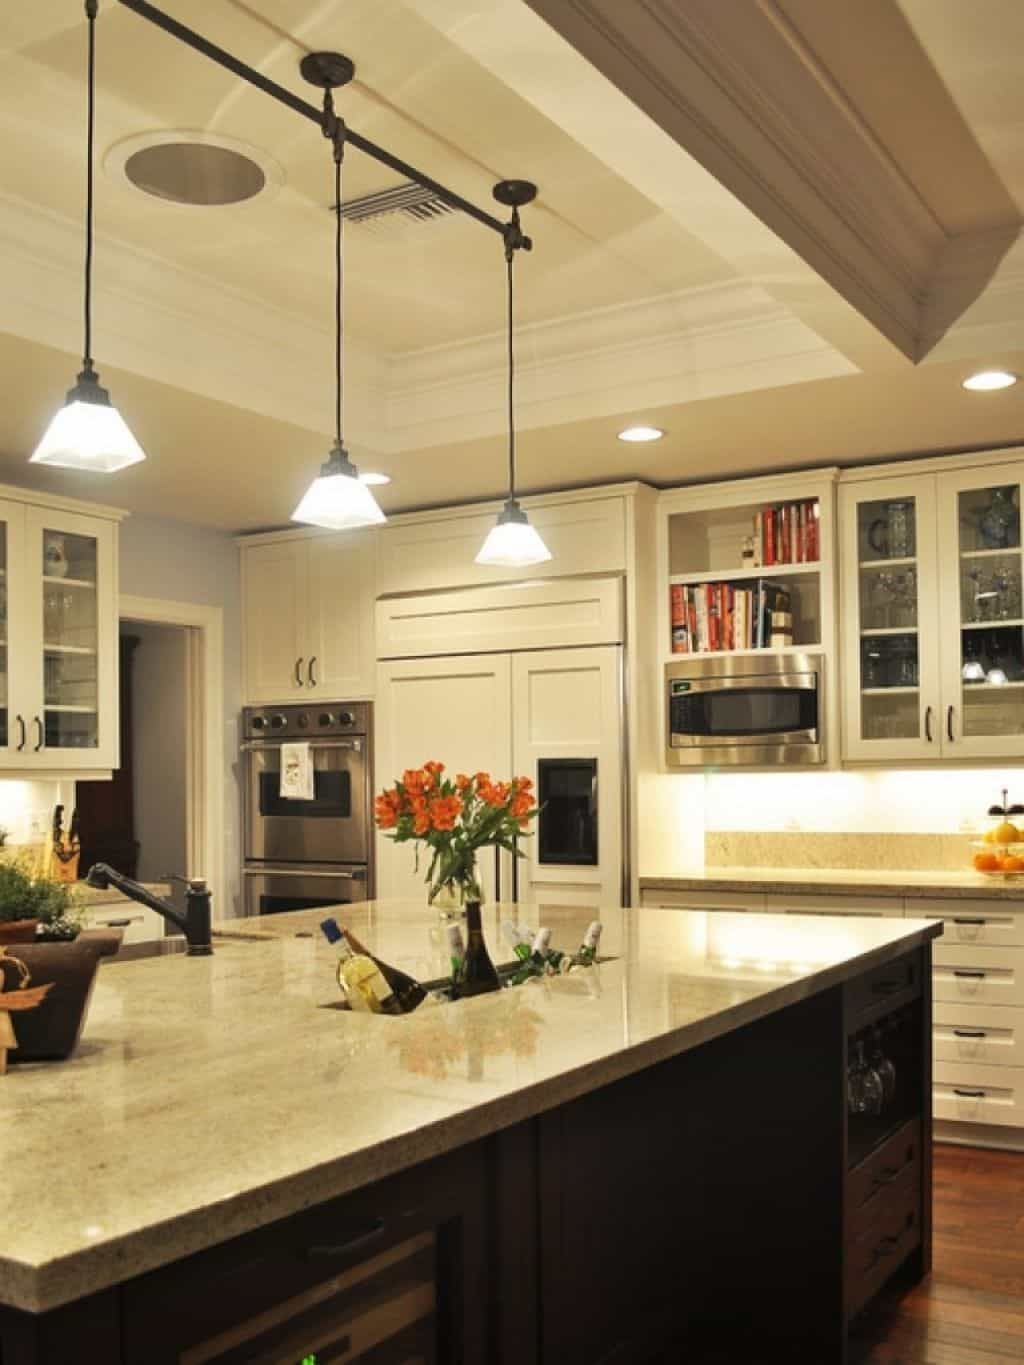 Stylish Pendant Track Lighting Fixtures